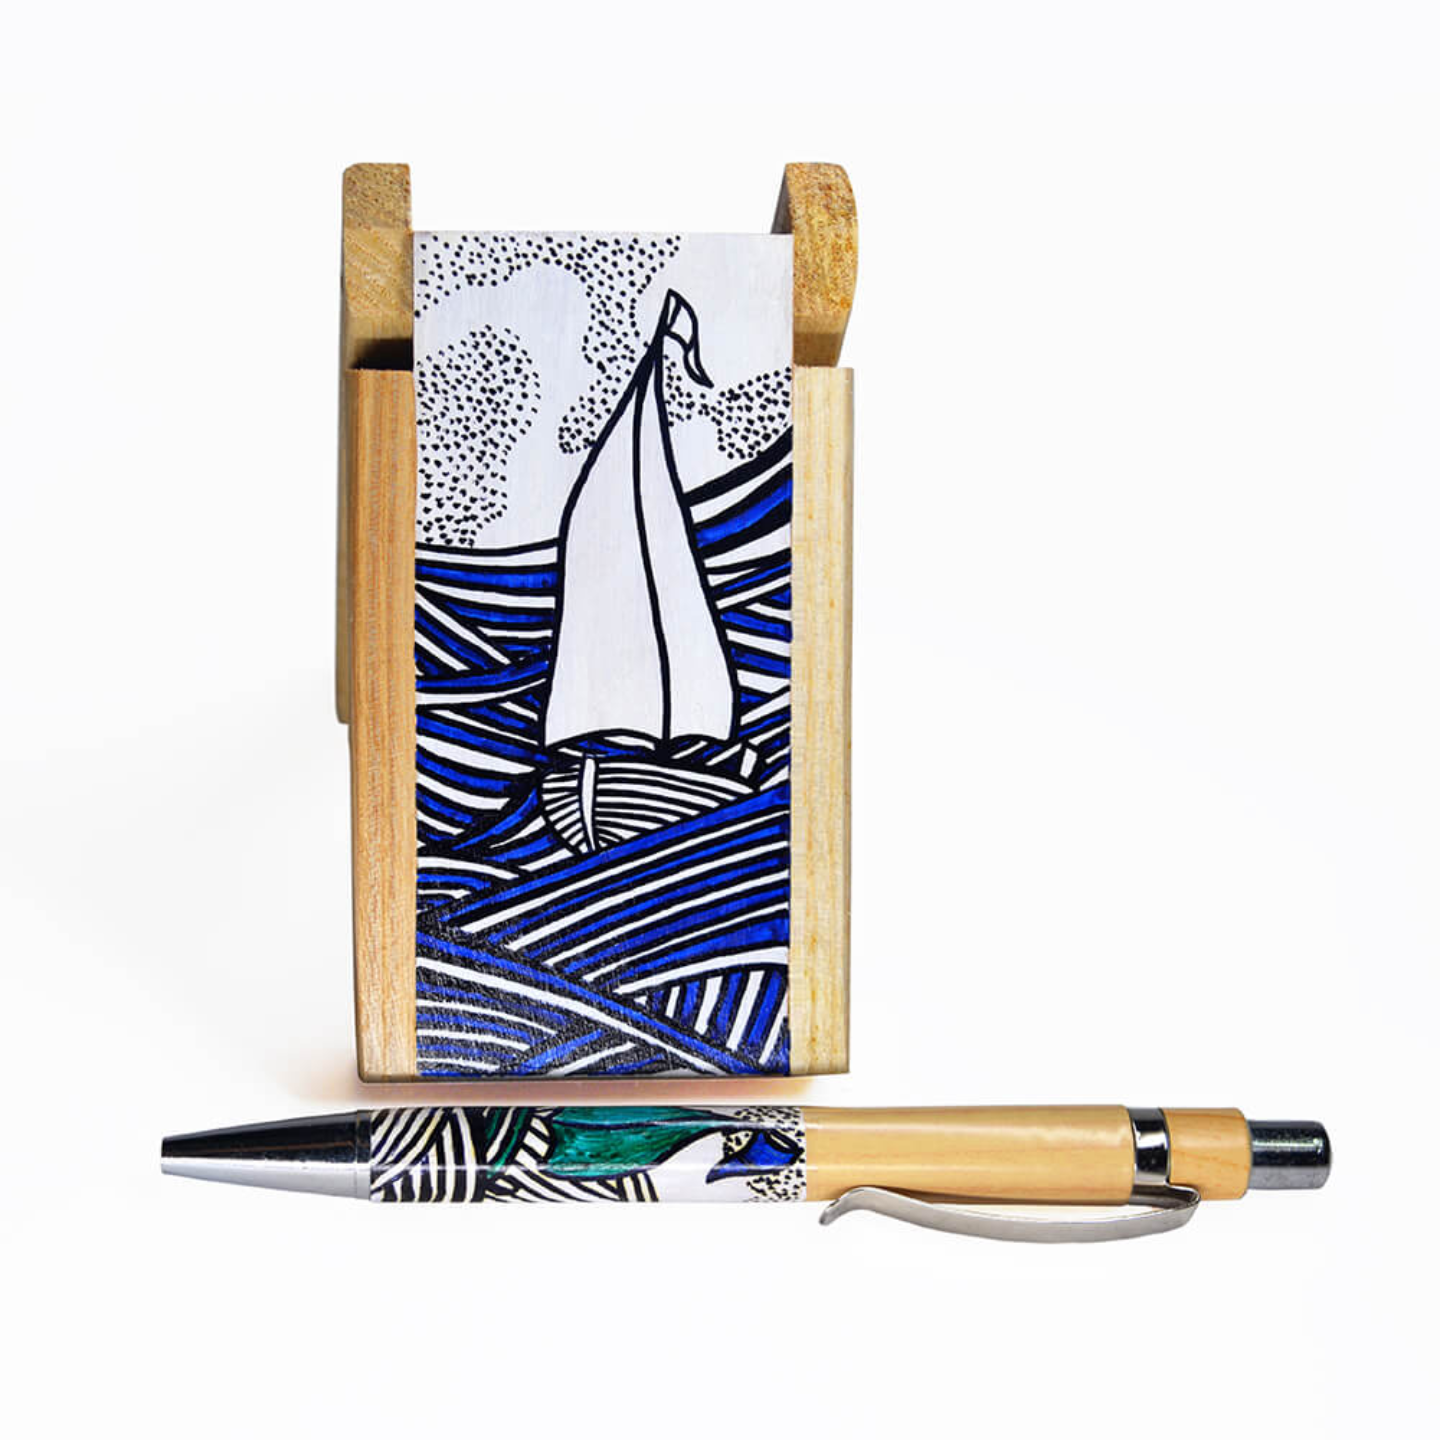 Pen stand with boat and waves doodling